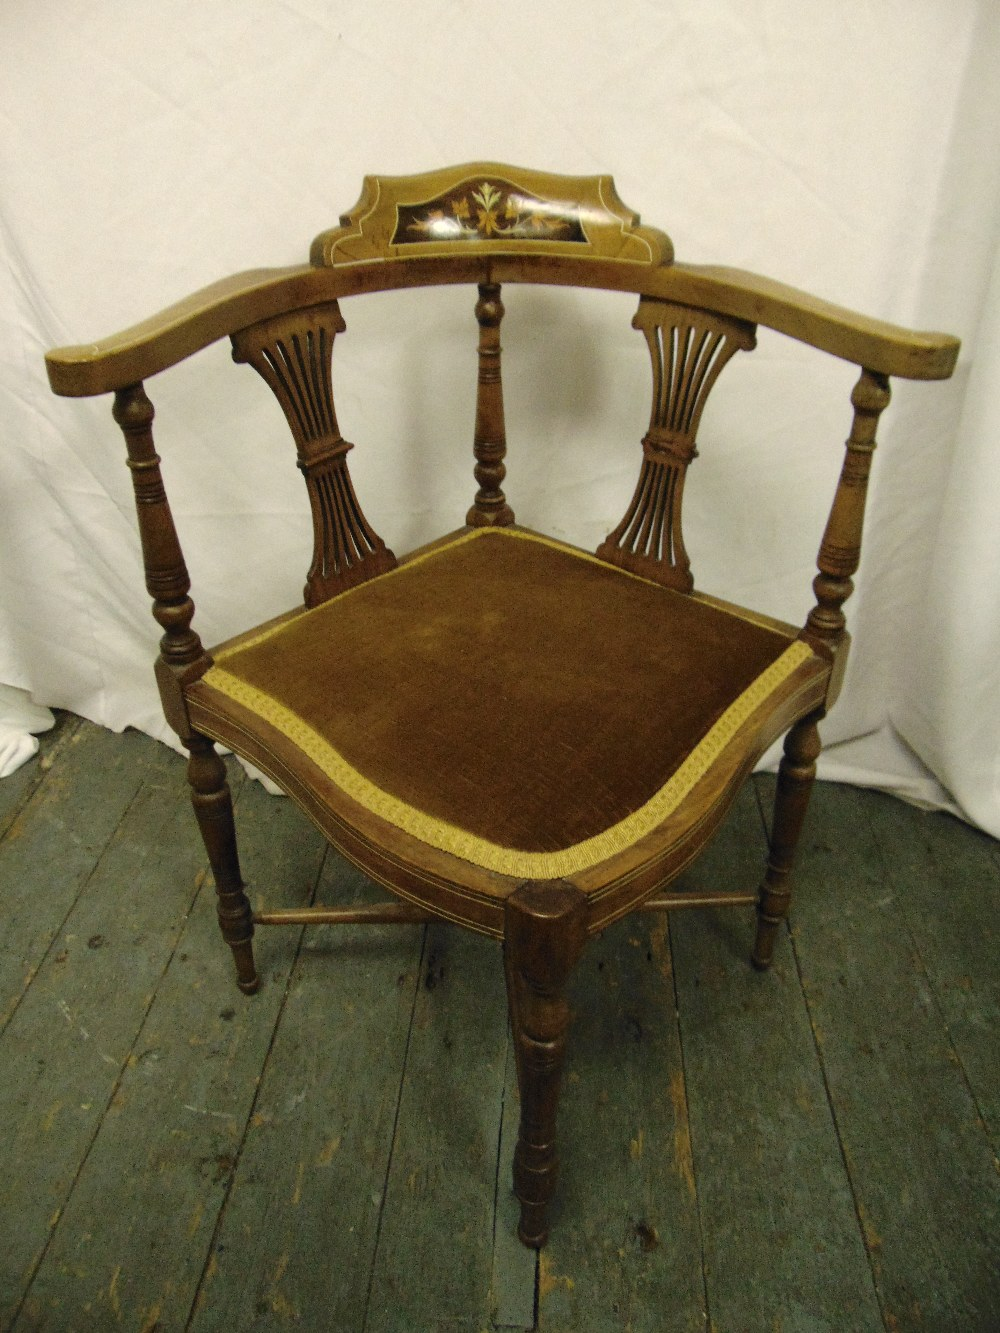 Lot 26 - An Edwardian mahogany corner chair with pierced slats on four turned legs